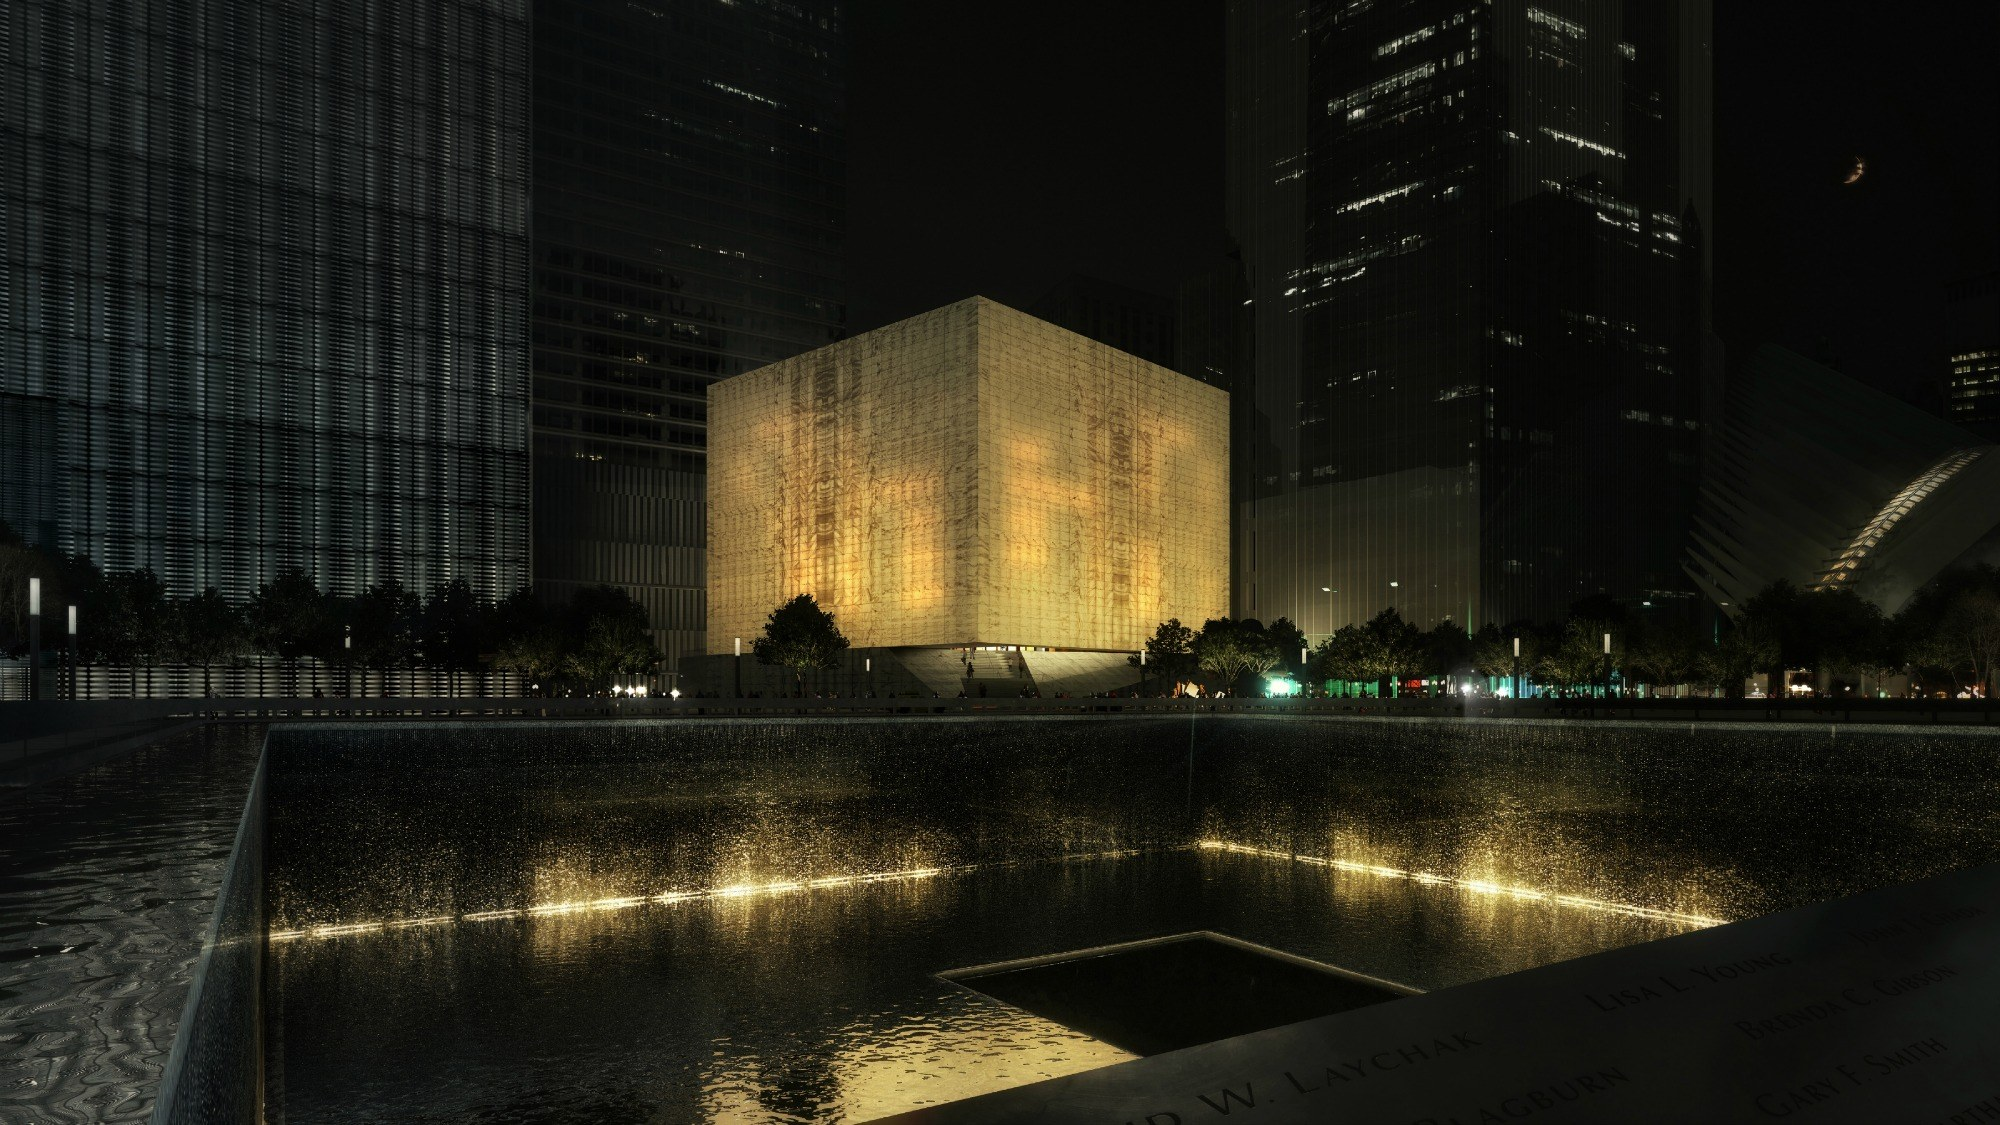 Revealed world trade center performing arts center will - Architekt one world trade center ...